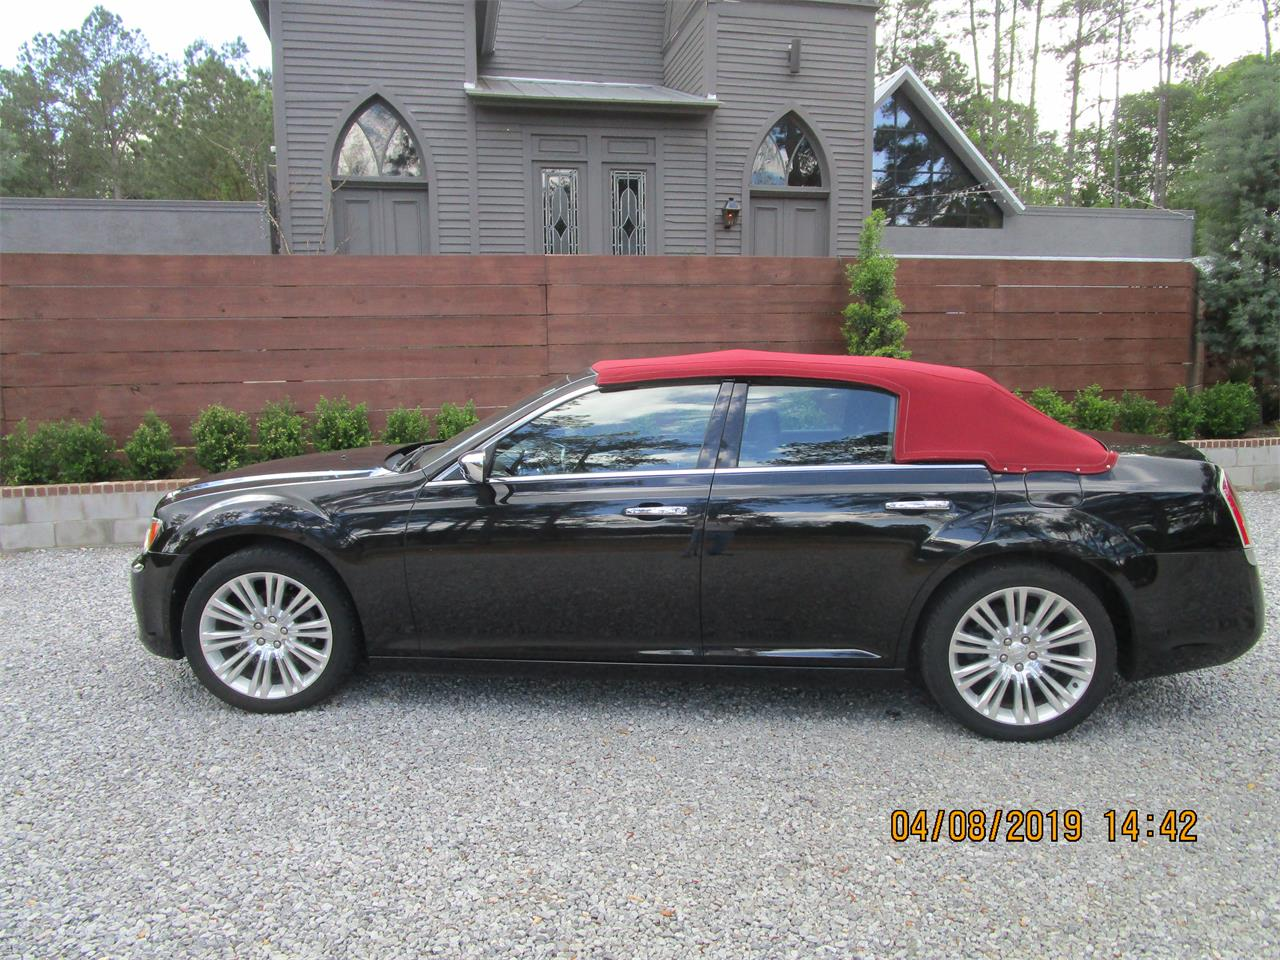 2011 Chrysler 300 for sale in Summit, MS – photo 13